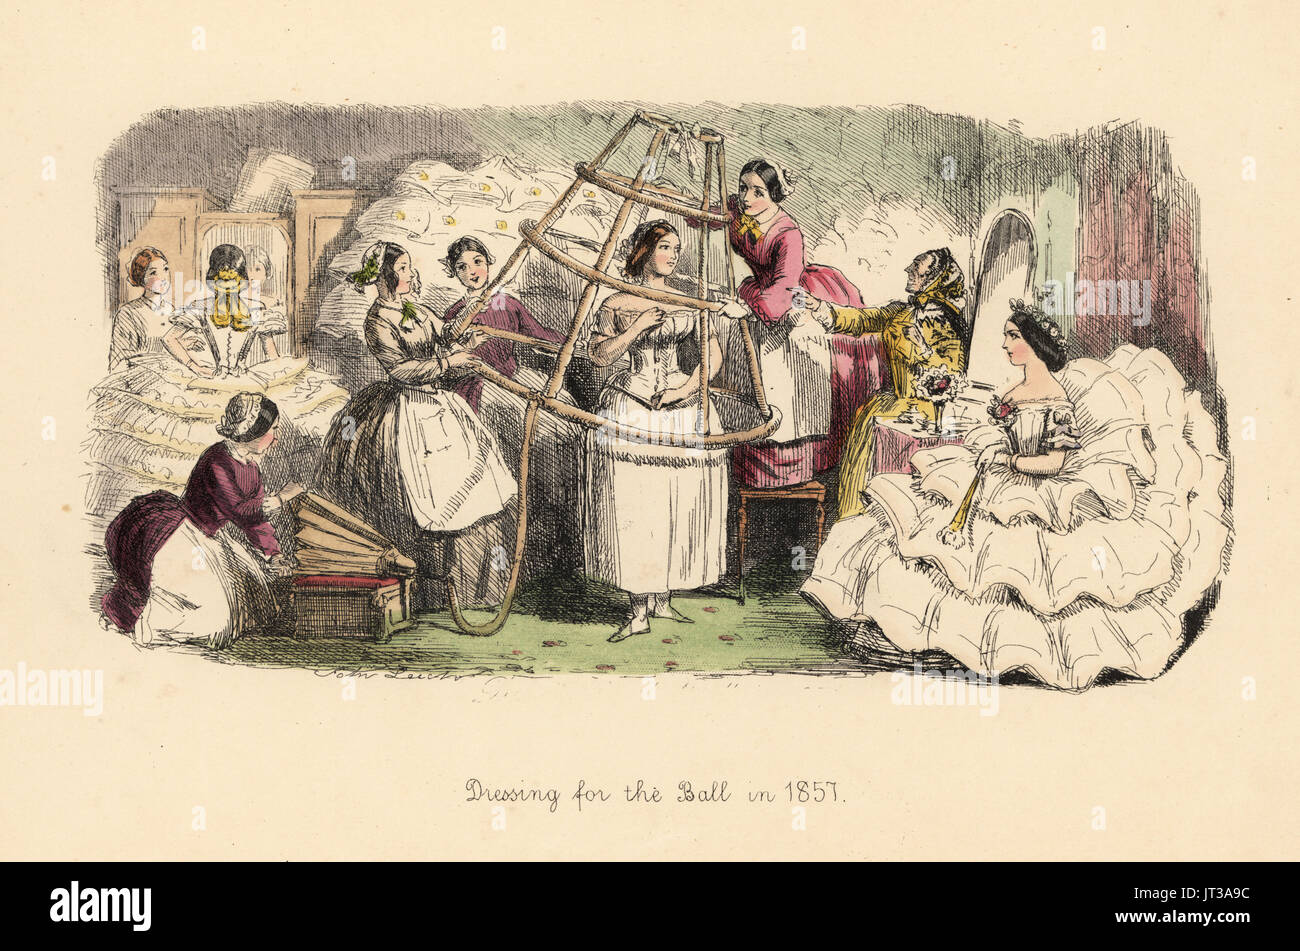 Dressing for the Ball in 1857. Woman being helped by maids into an inflatable hoop frame to support her crinoline dress. Handcoloured etching by John Leech from Follies of the Year, from Punch's Pocket Books, Bradbury, London, 1864. - Stock Image